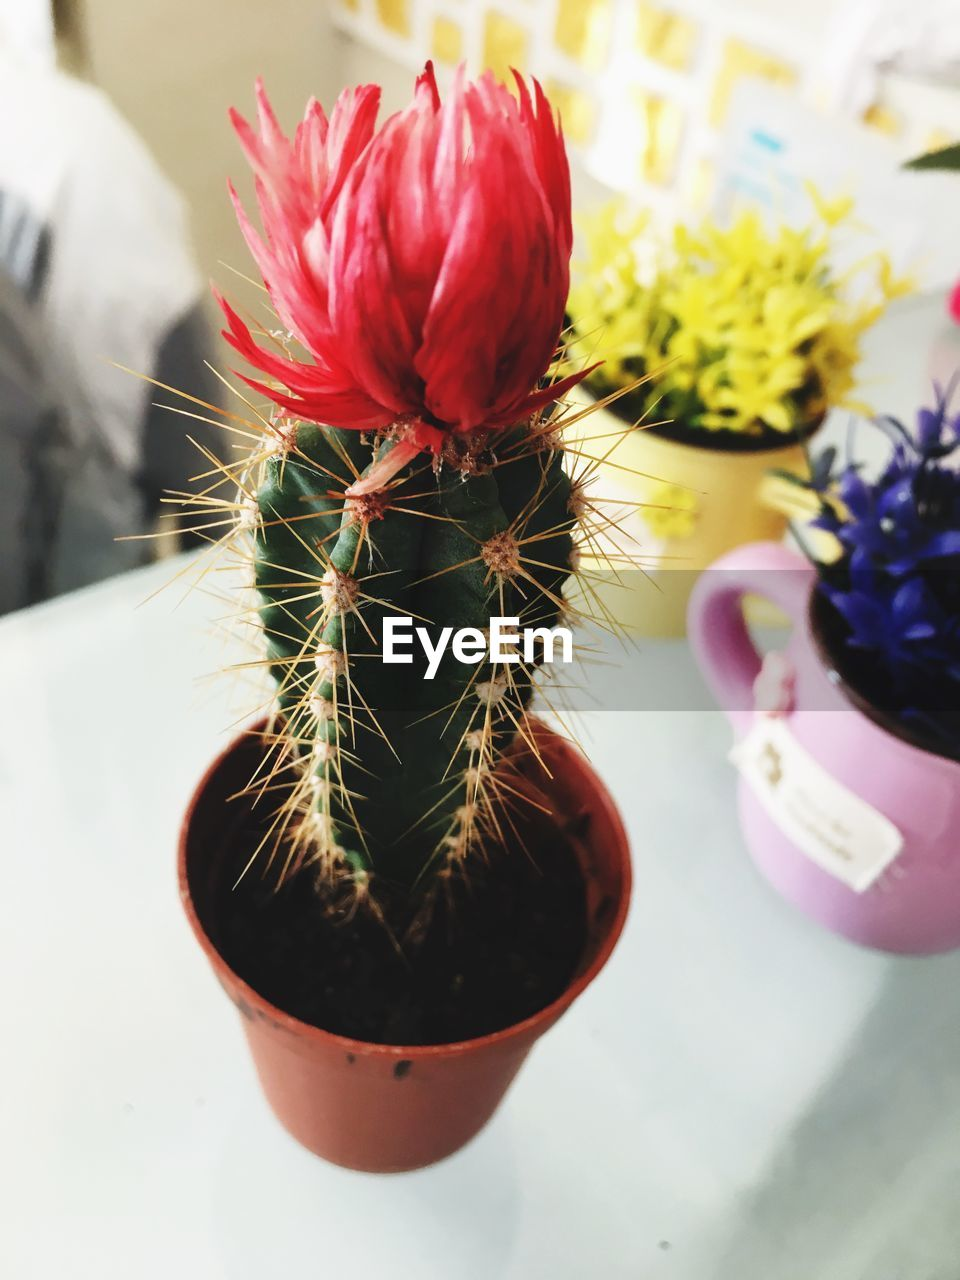 flowering plant, flower, plant, close-up, potted plant, nature, cactus, beauty in nature, freshness, succulent plant, growth, focus on foreground, no people, vulnerability, fragility, red, indoors, day, flower head, table, flower pot, houseplant